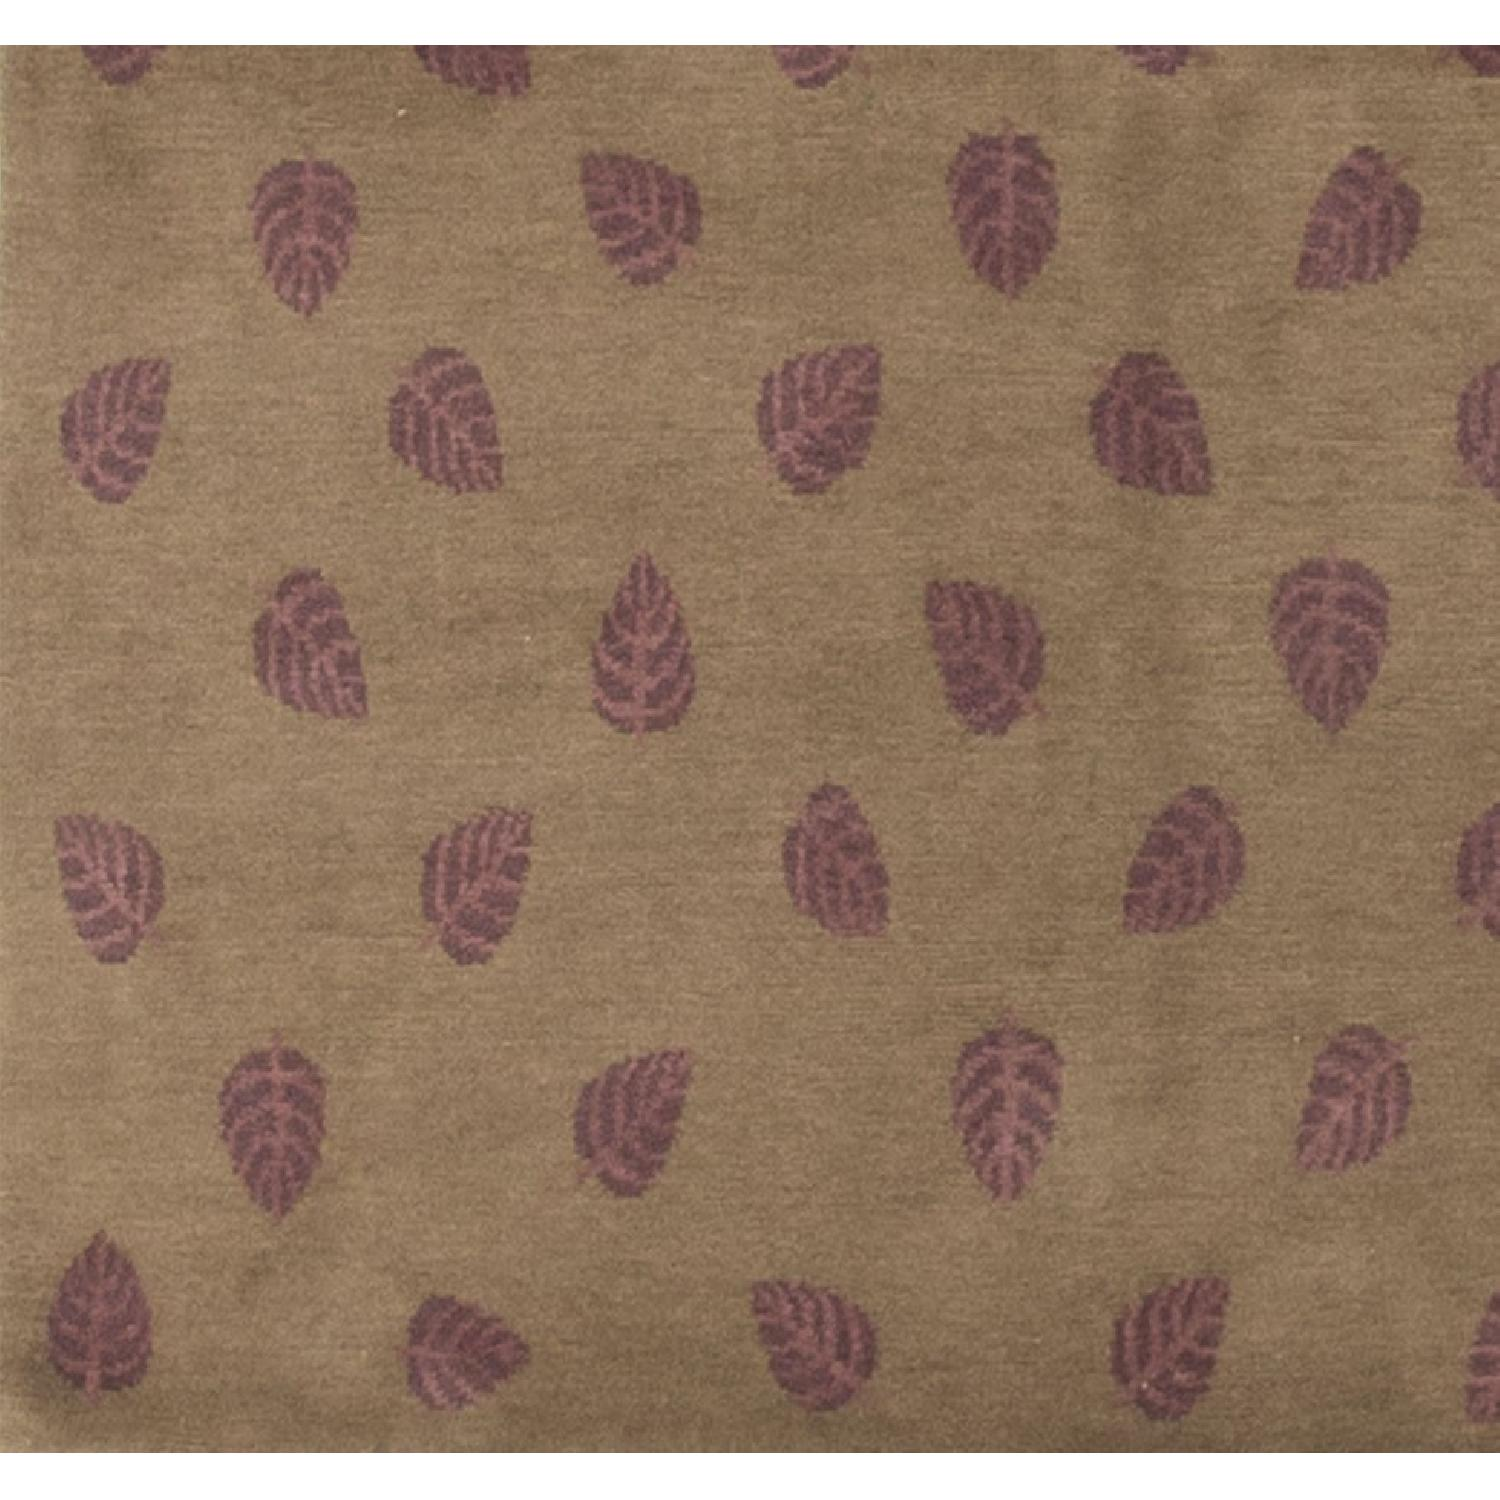 Modern Contemporary Hand Knotted Wool Rug in Brown/Red - image-3